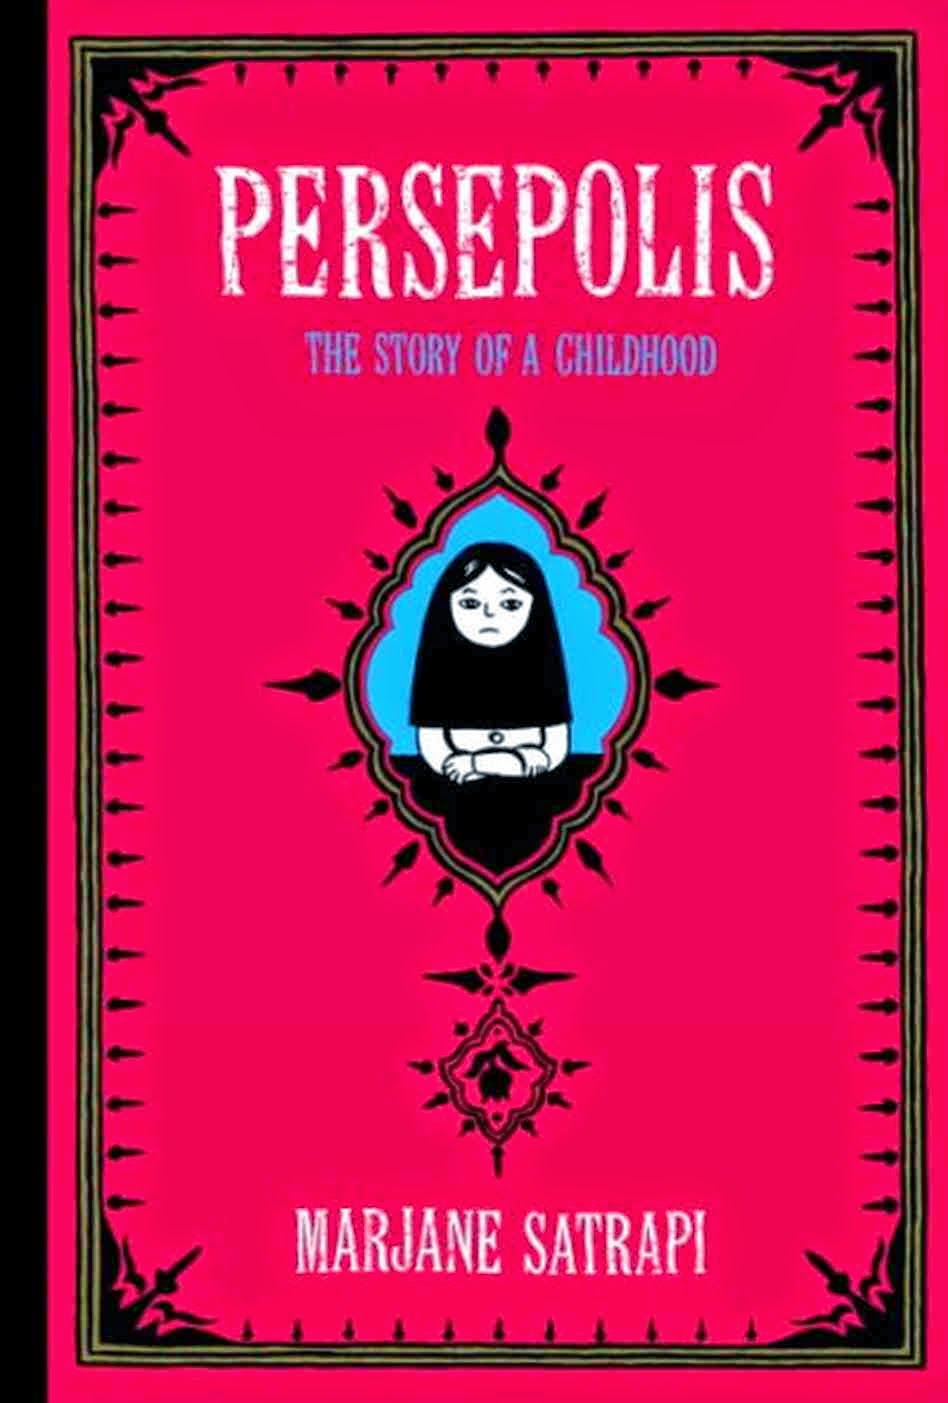 Persepolis Graphic Novel Essay